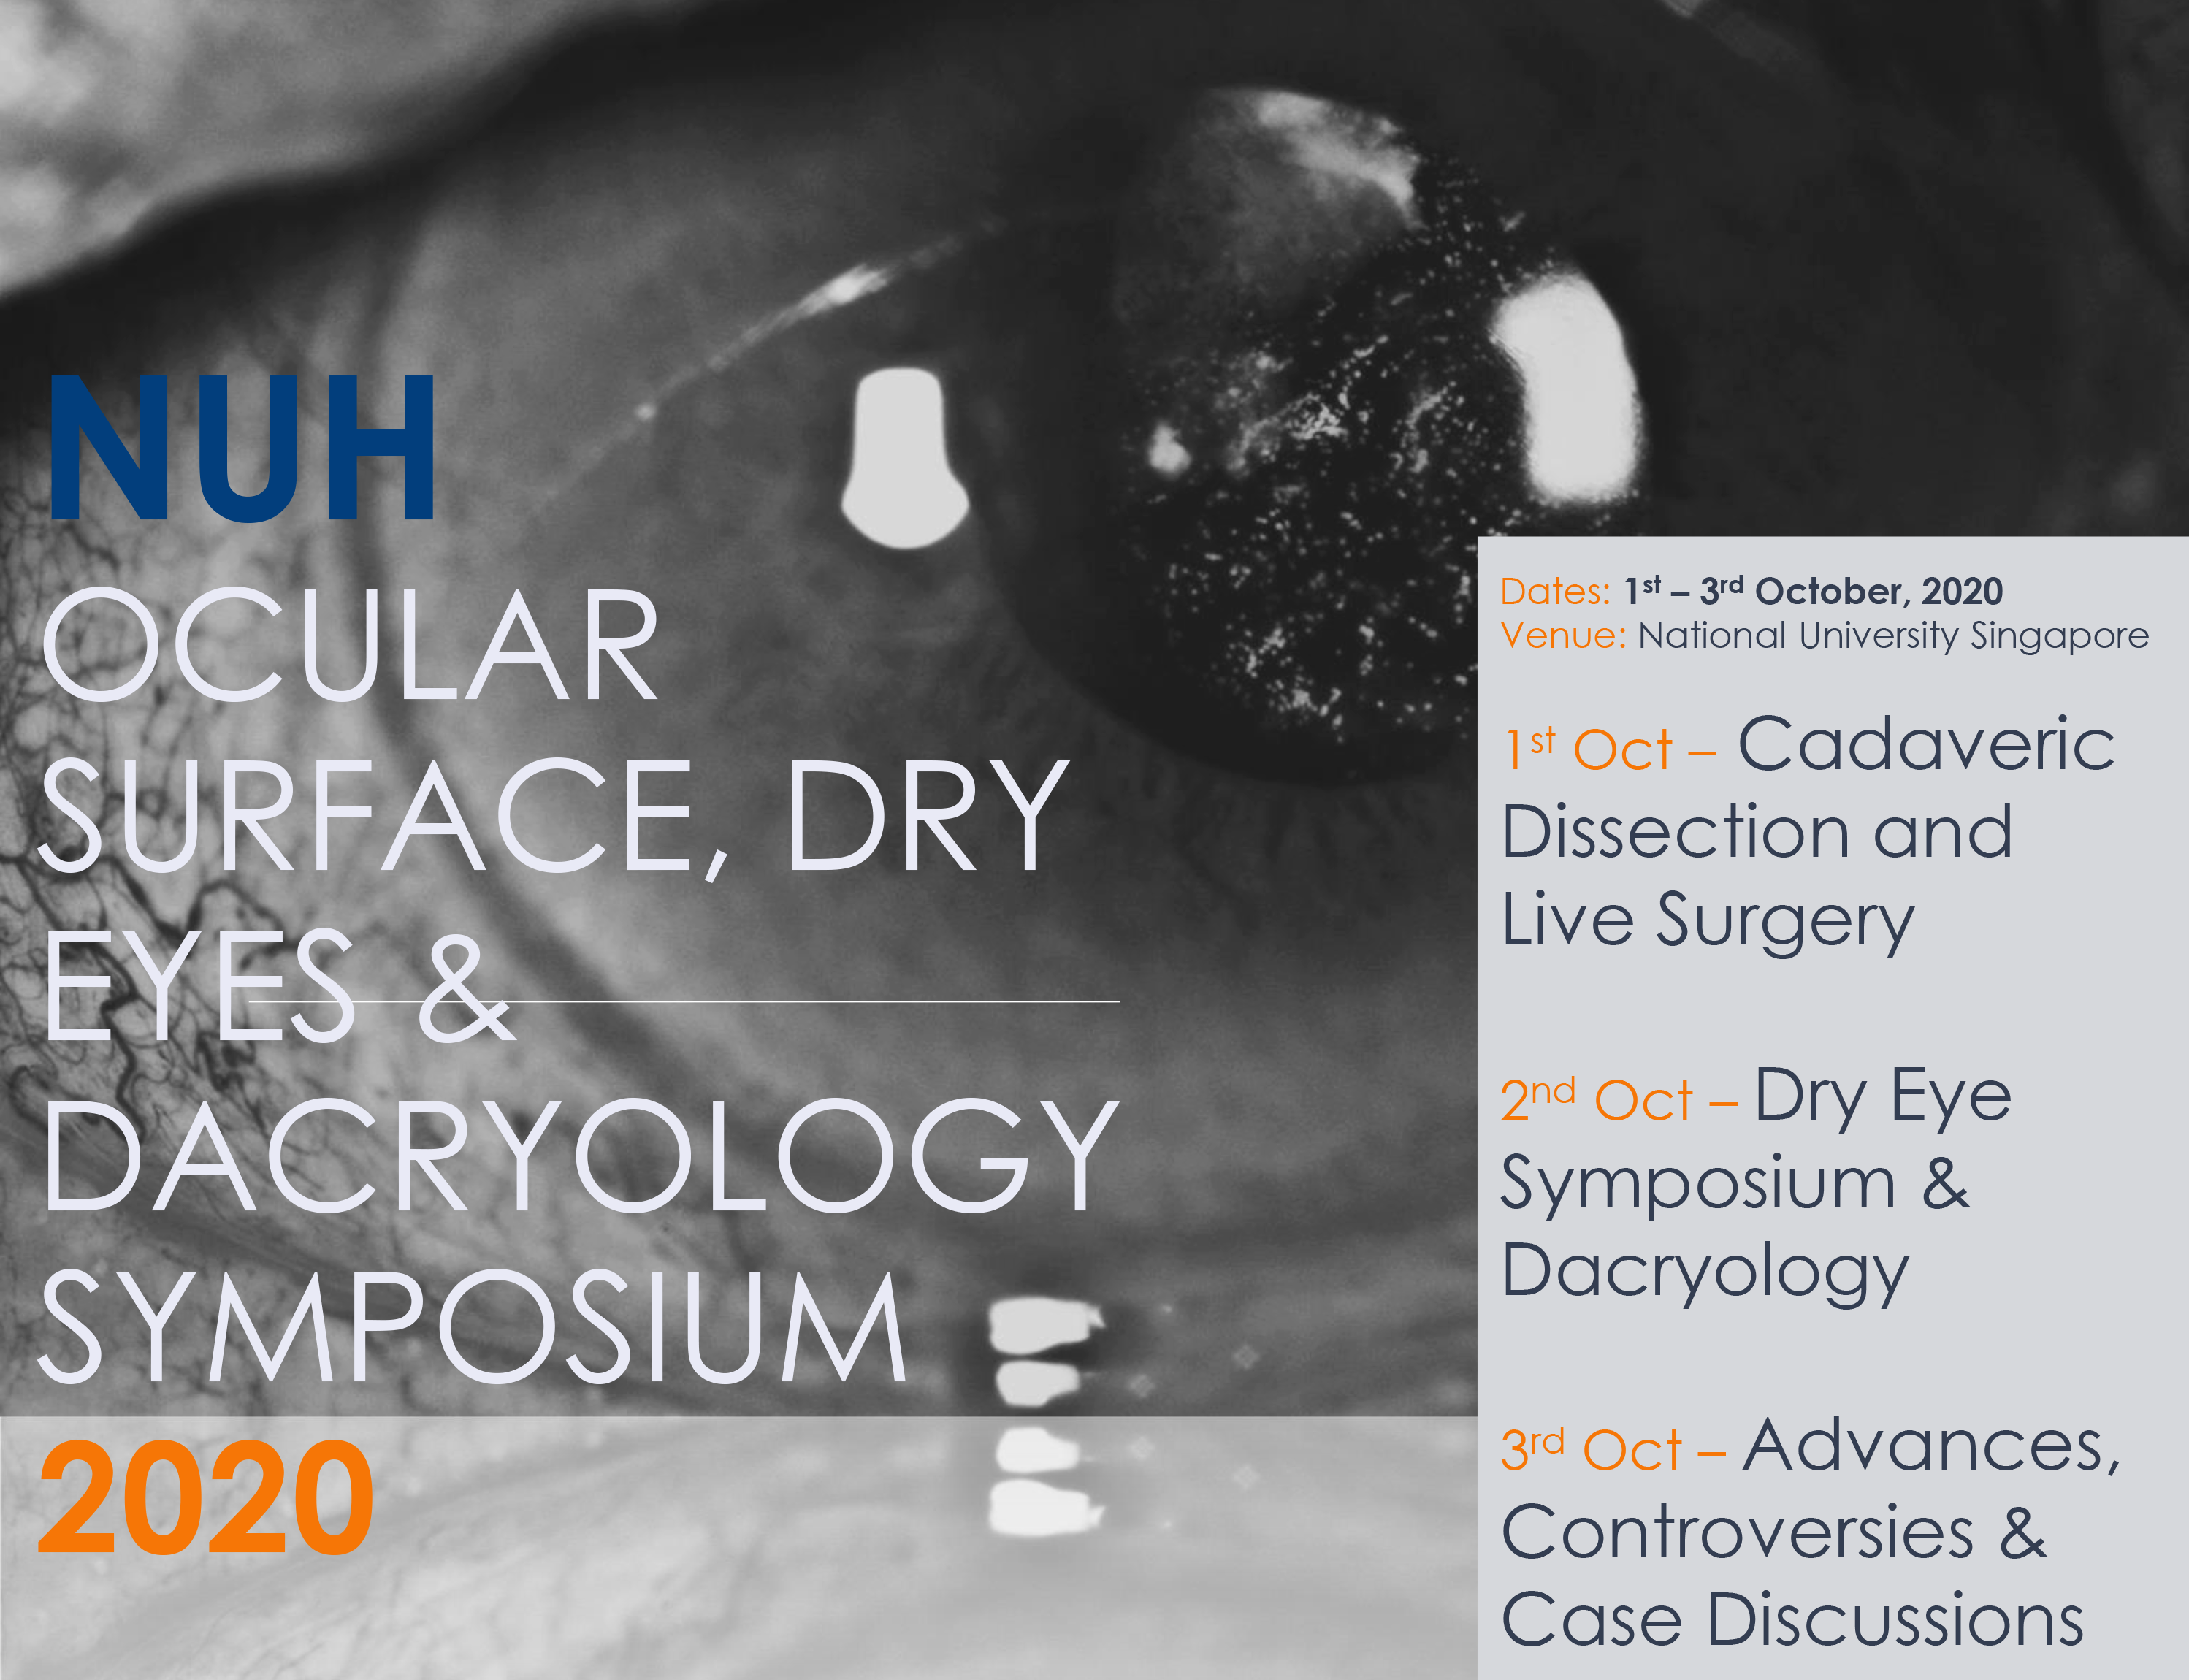 NUH- Ocular Surface, Dry Eye & Dacrynology Symposium 2020